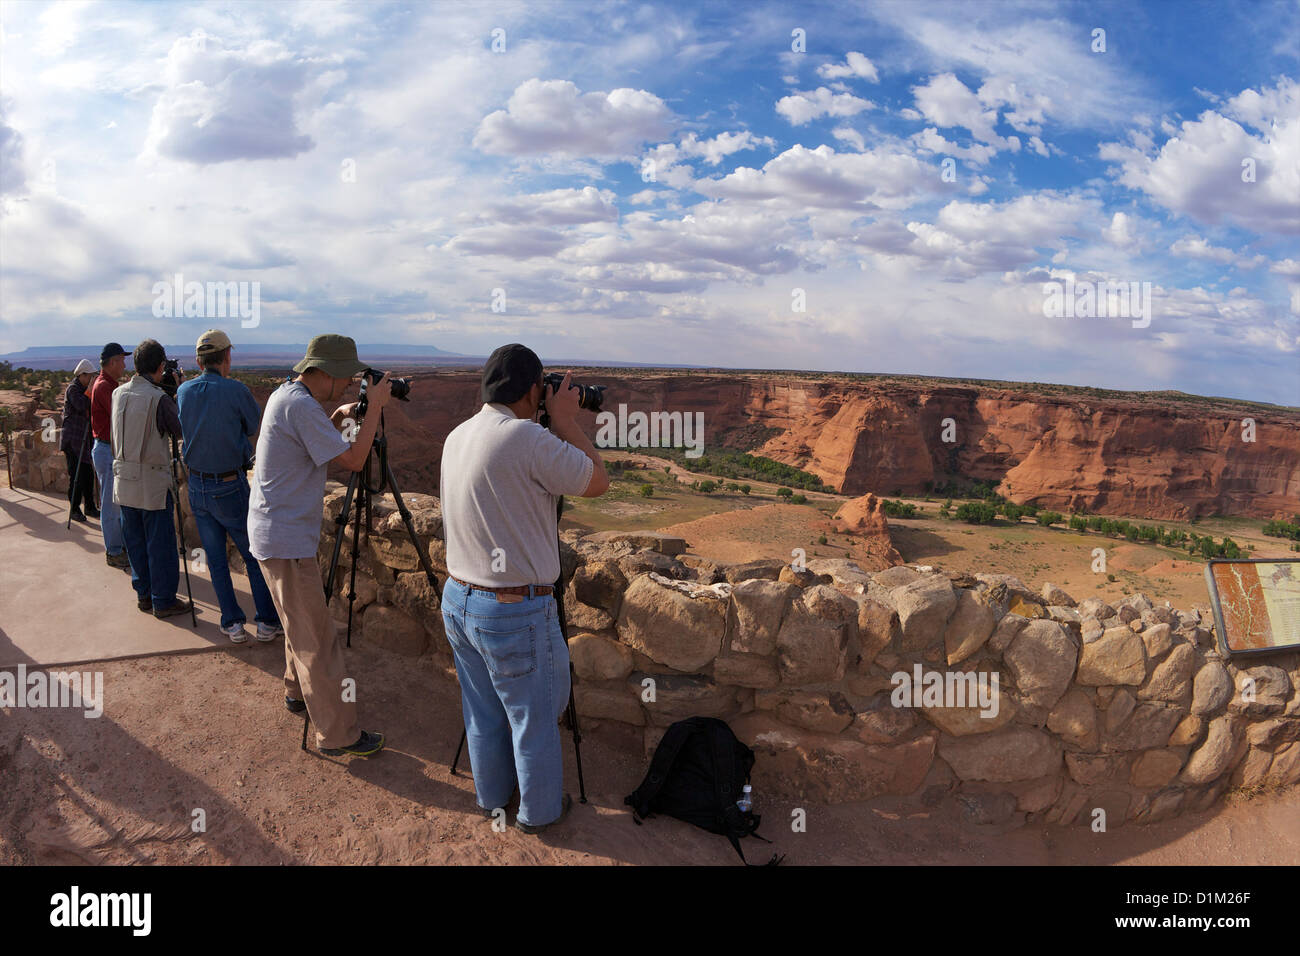 Amateur photographers with tripods, Junction Overlook, Canyon de Chelly National Monument, Arizona, USA - Stock Image